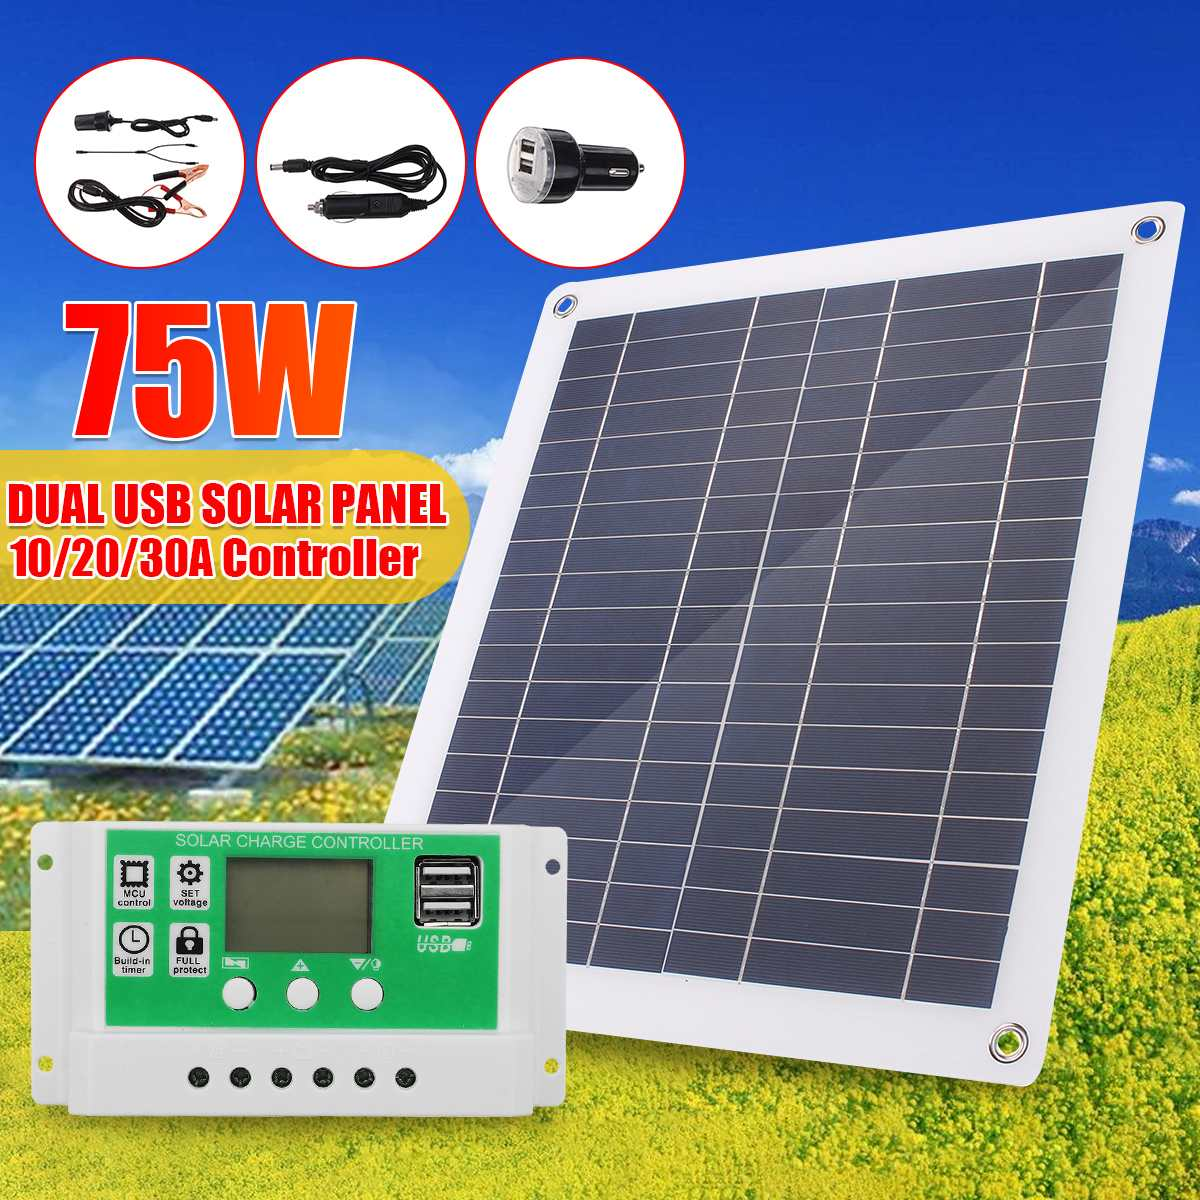 30W/50W/60W/75W Solar Panel Dual USB Output Solar Cells Solar Panel 10/20/30A Controller For Car Yacht 12V Battery Boat Charger